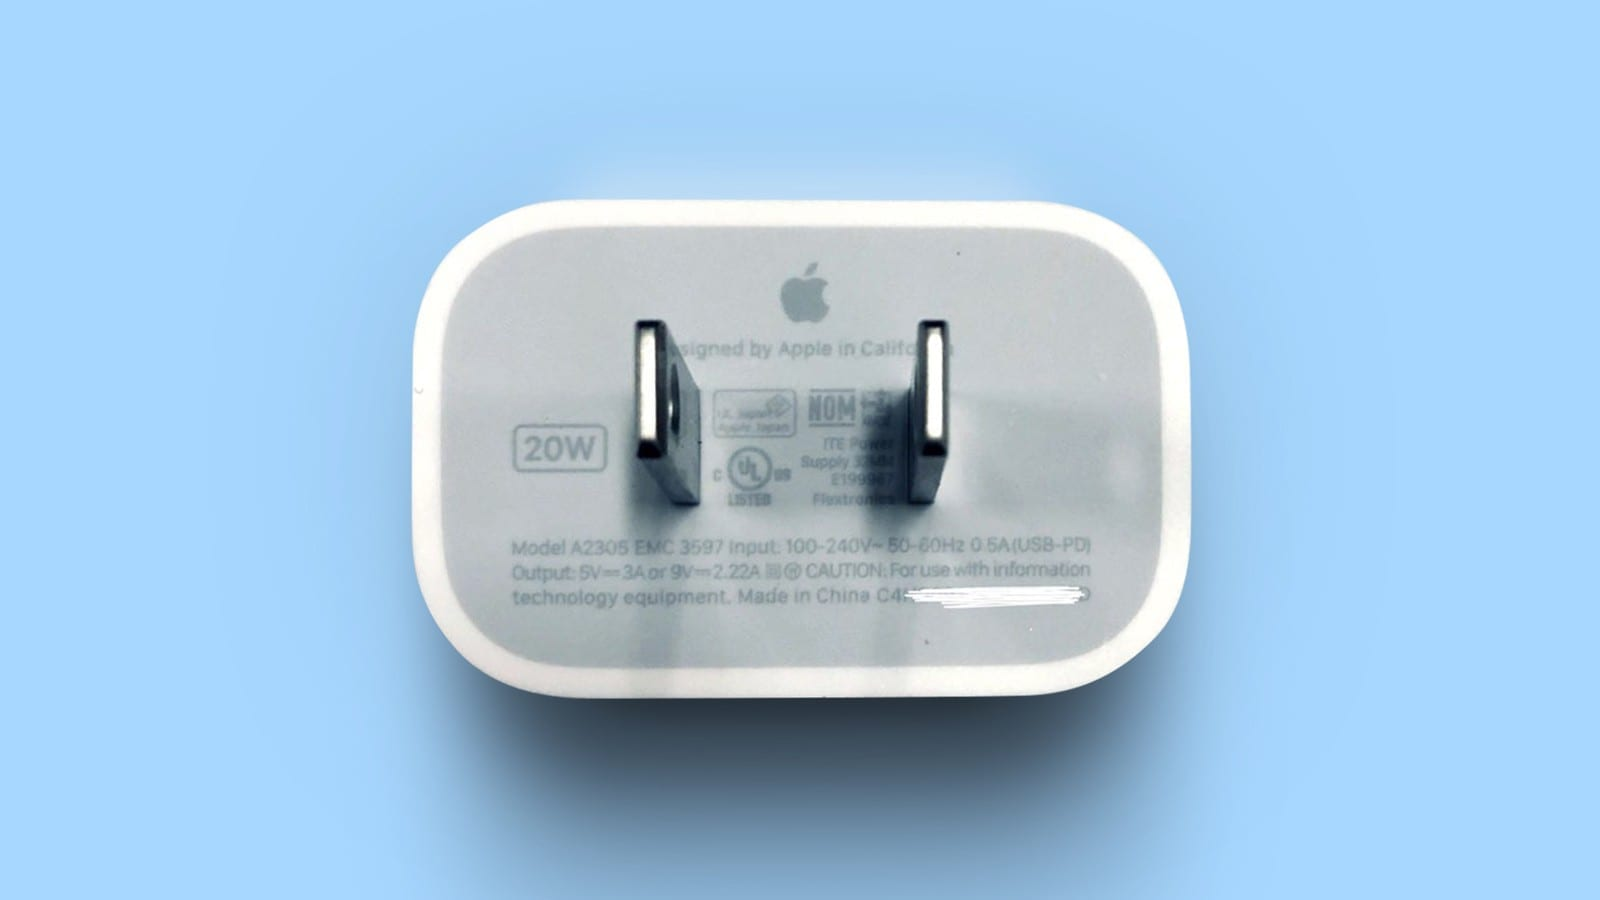 iPhone 12 charger